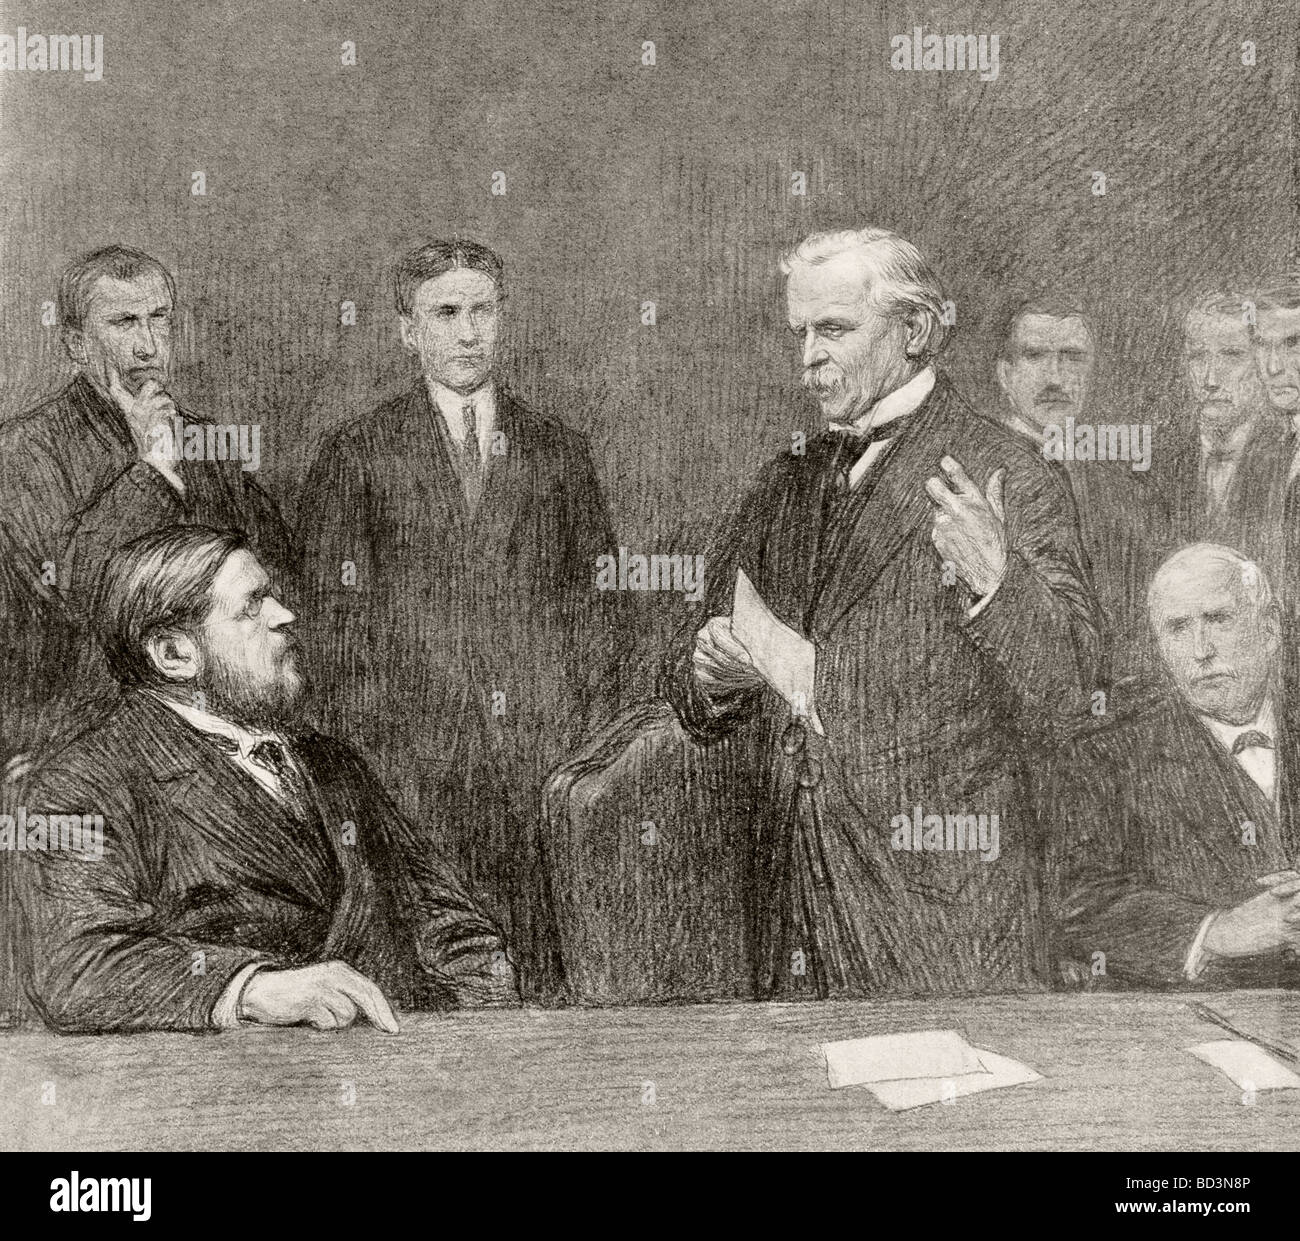 Lloyd George speaks to delegates of the Trade Unions and the French ex Minister of Armament Albert Thomas. - Stock Image